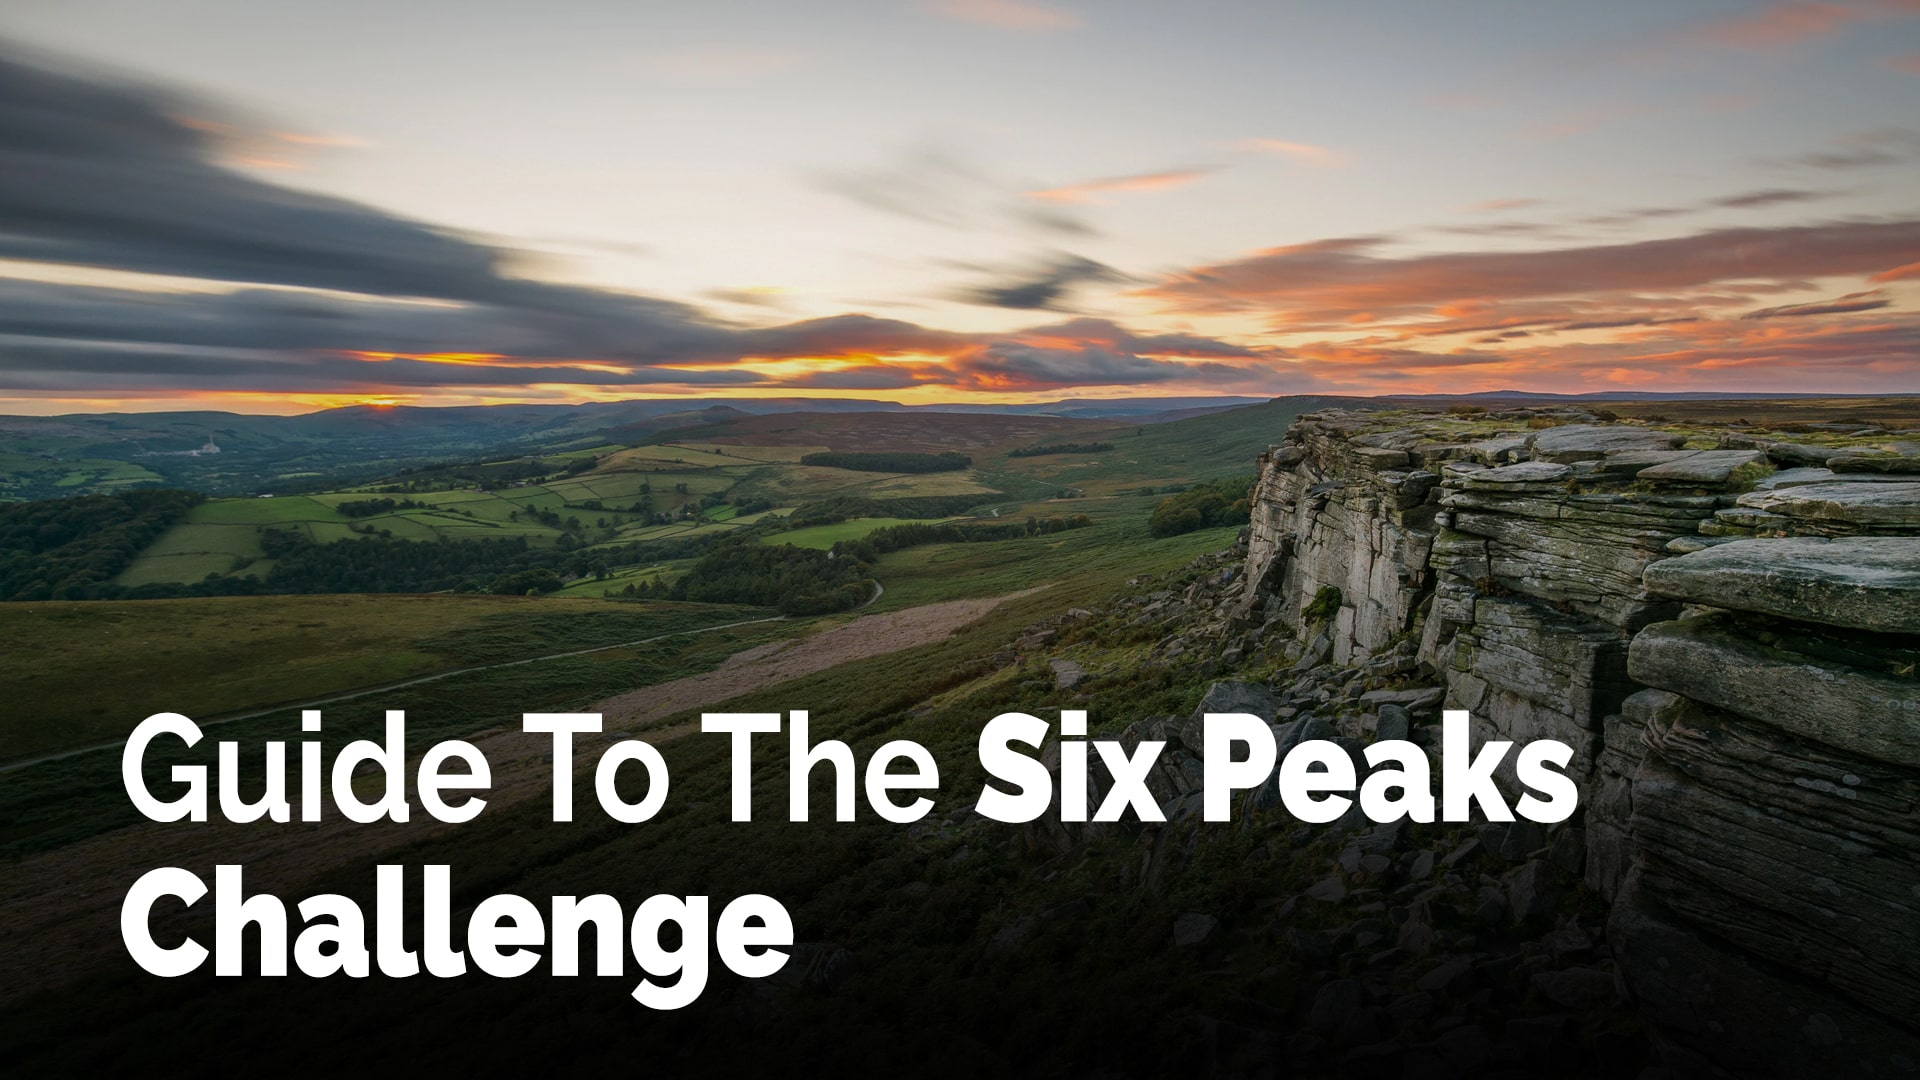 Guide To The Six Peaks Challenge